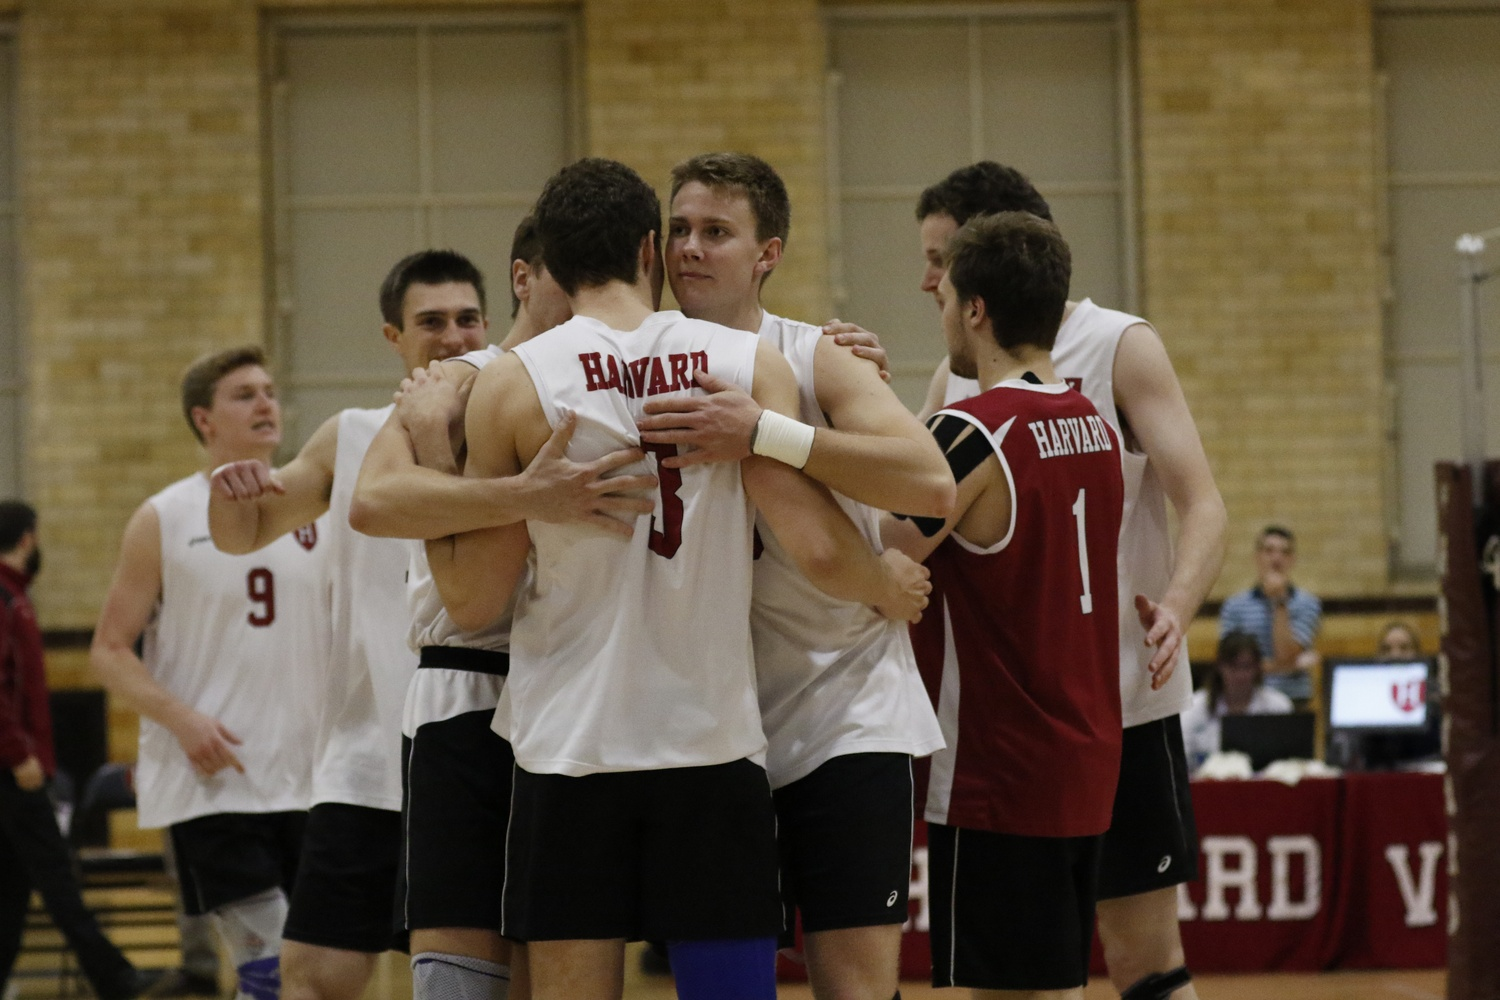 Harvard went just 13-14 on the season, but it recorded an impressive 10-4 conference record.